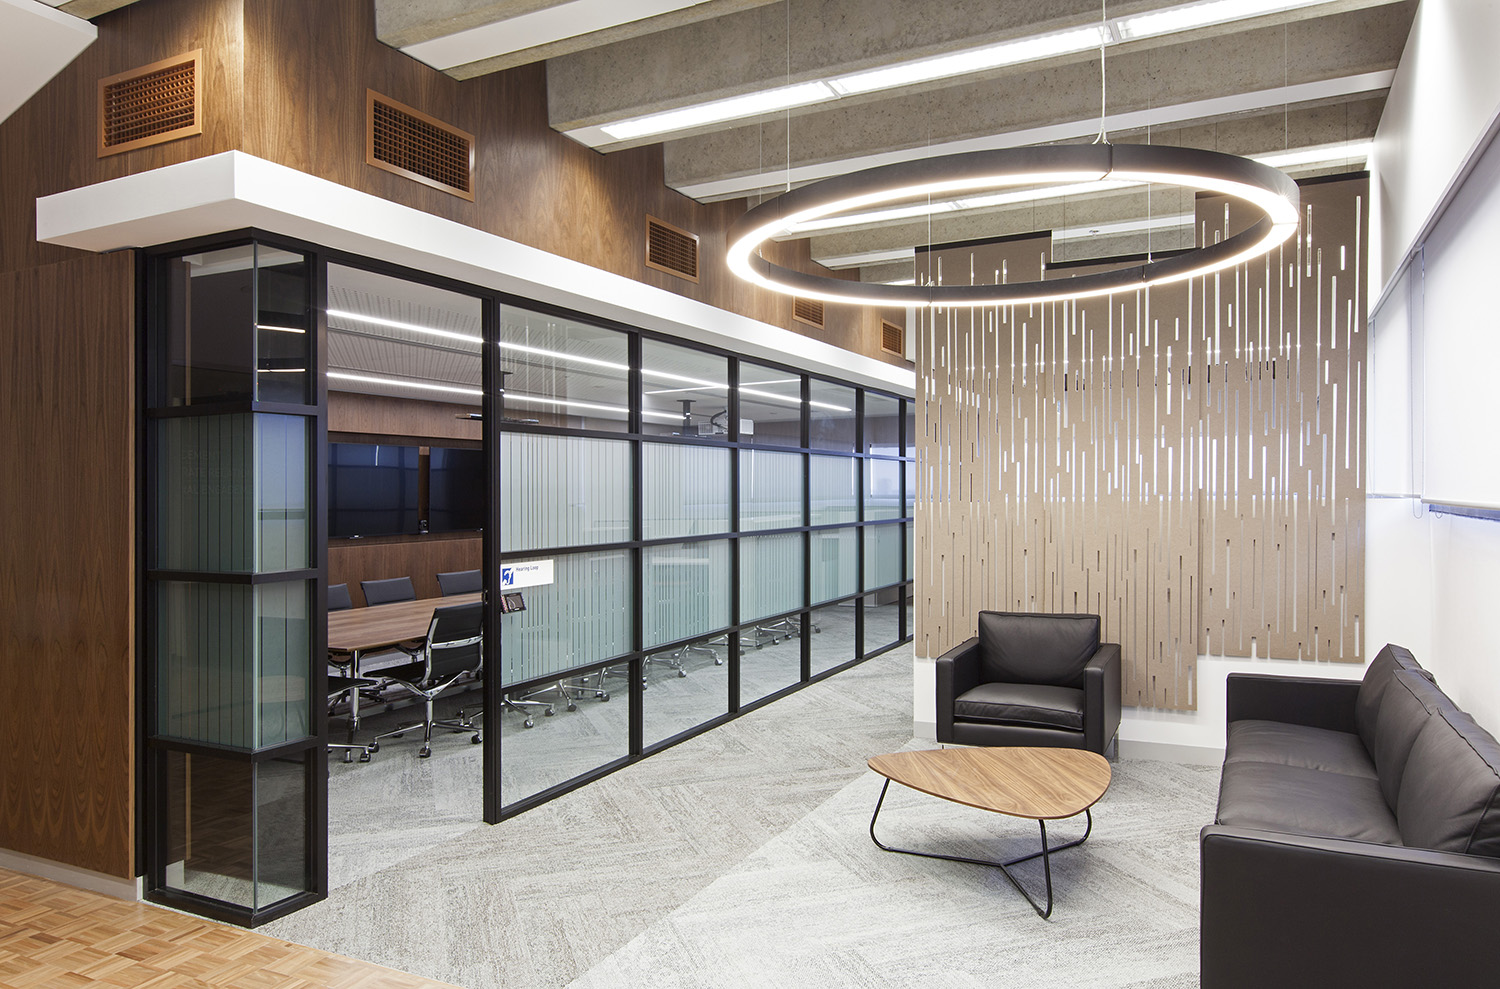 UTS Building 1 Levels 20 & 21 Office and Workplace Entry Foyer and Waiting Area Interior Design – Gardner Wetherill GW 2